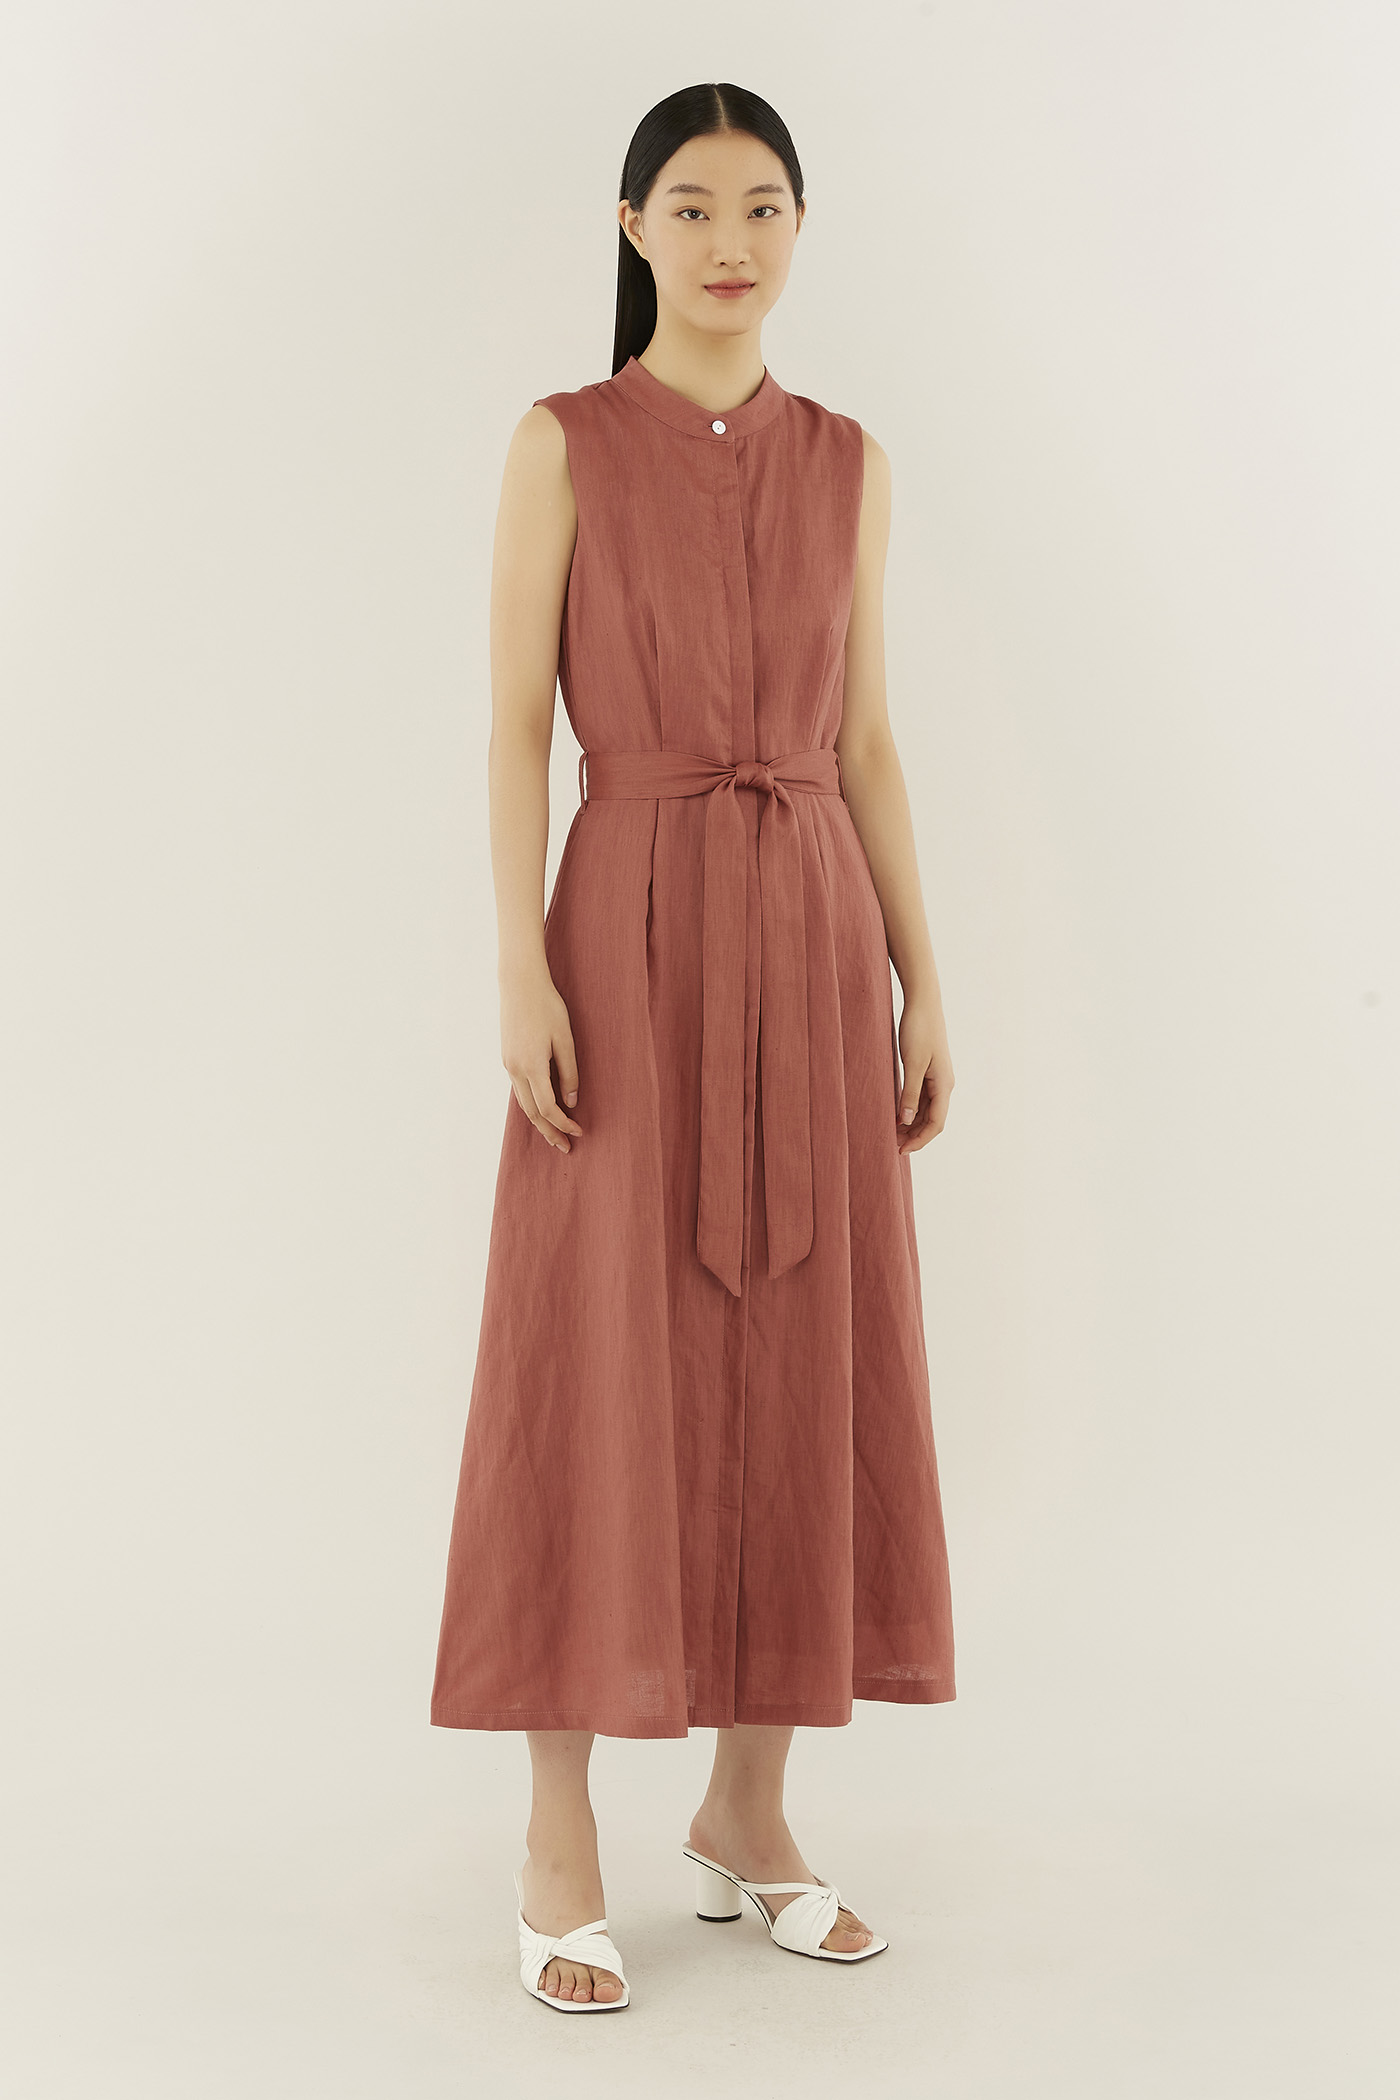 Delilah Stand-collar Dress